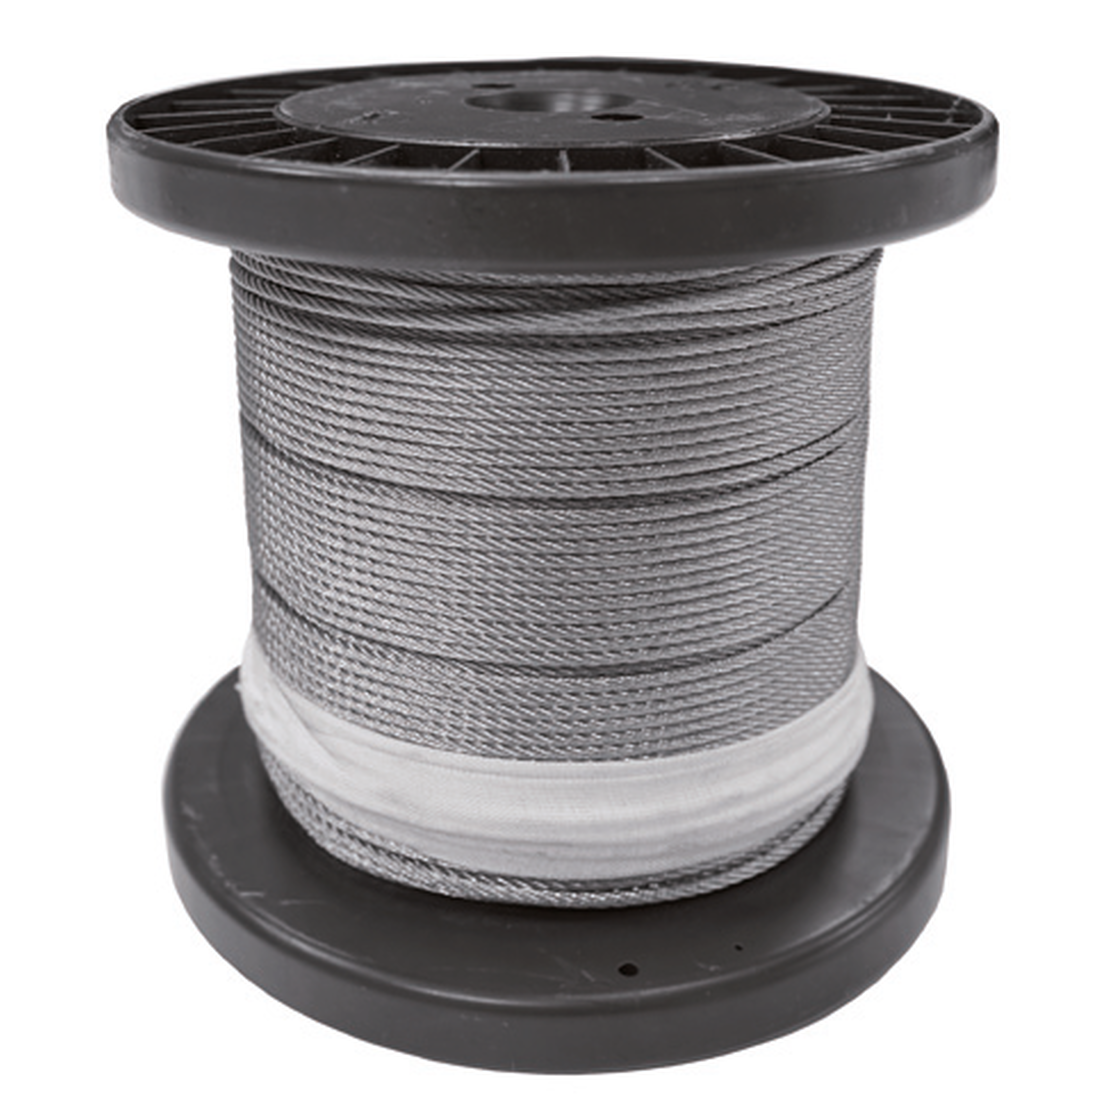 STAINLESS STEEL WIRE I CONSTRUCTION 7 x 6 +1, TRIMMED LENGTH OF WIRES I FOR 50KG